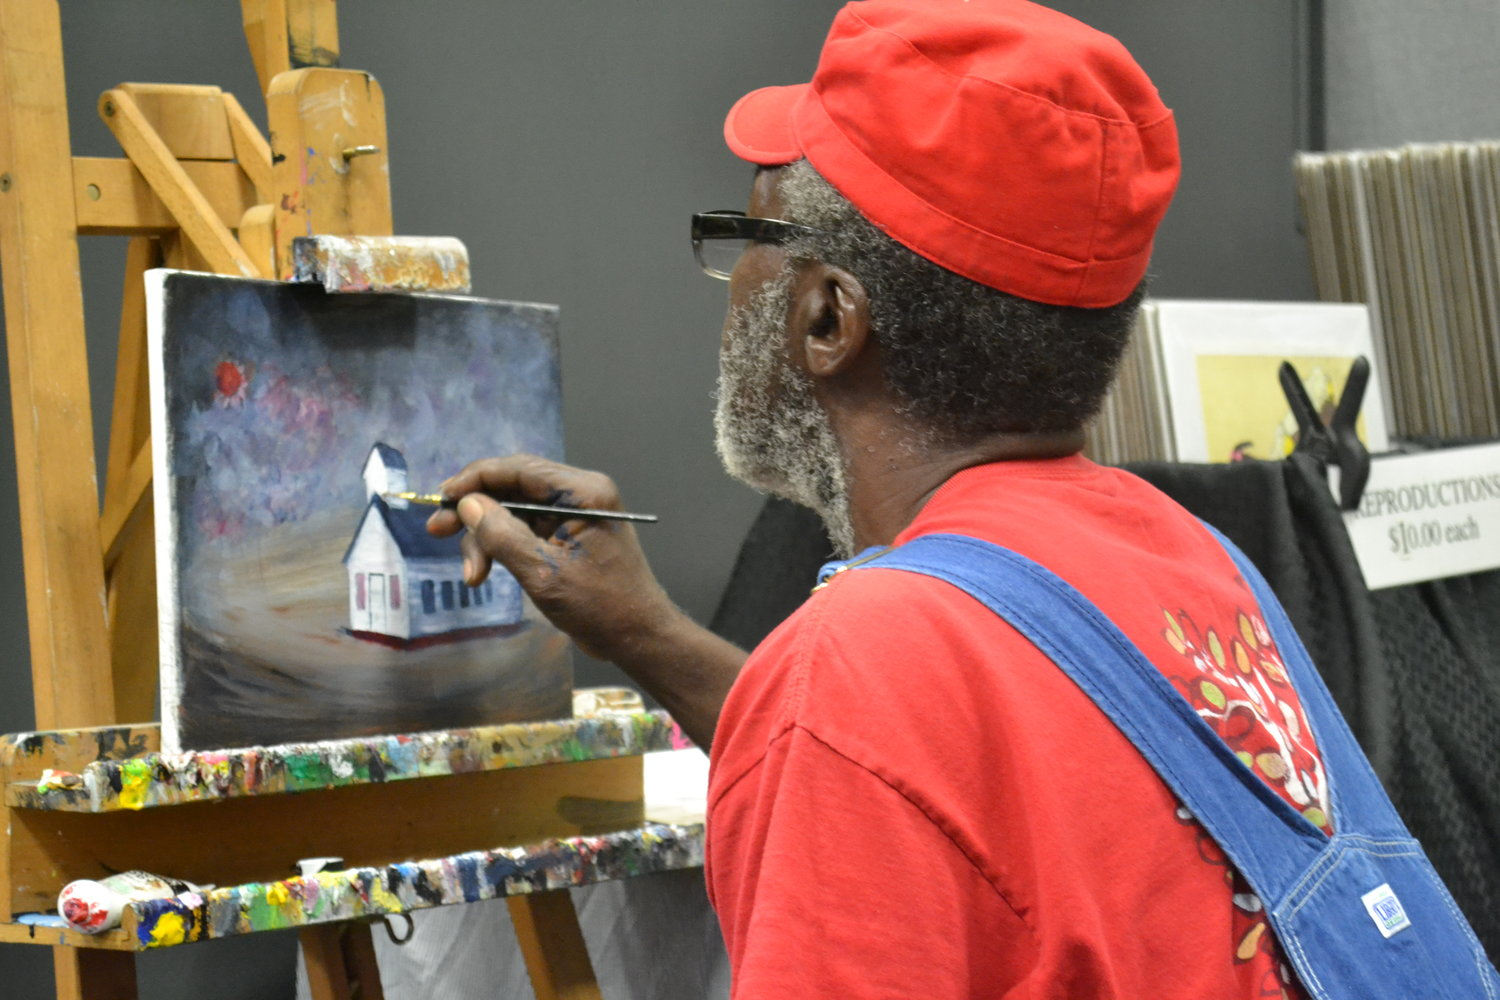 The Walker County Arts Alliance (WCAA) 16th Annual Art in the Park was moved indoors this past Saturday with the threat of rain. Artists and vendors packed the Jasper Civic Center for a day of shopping and activities.